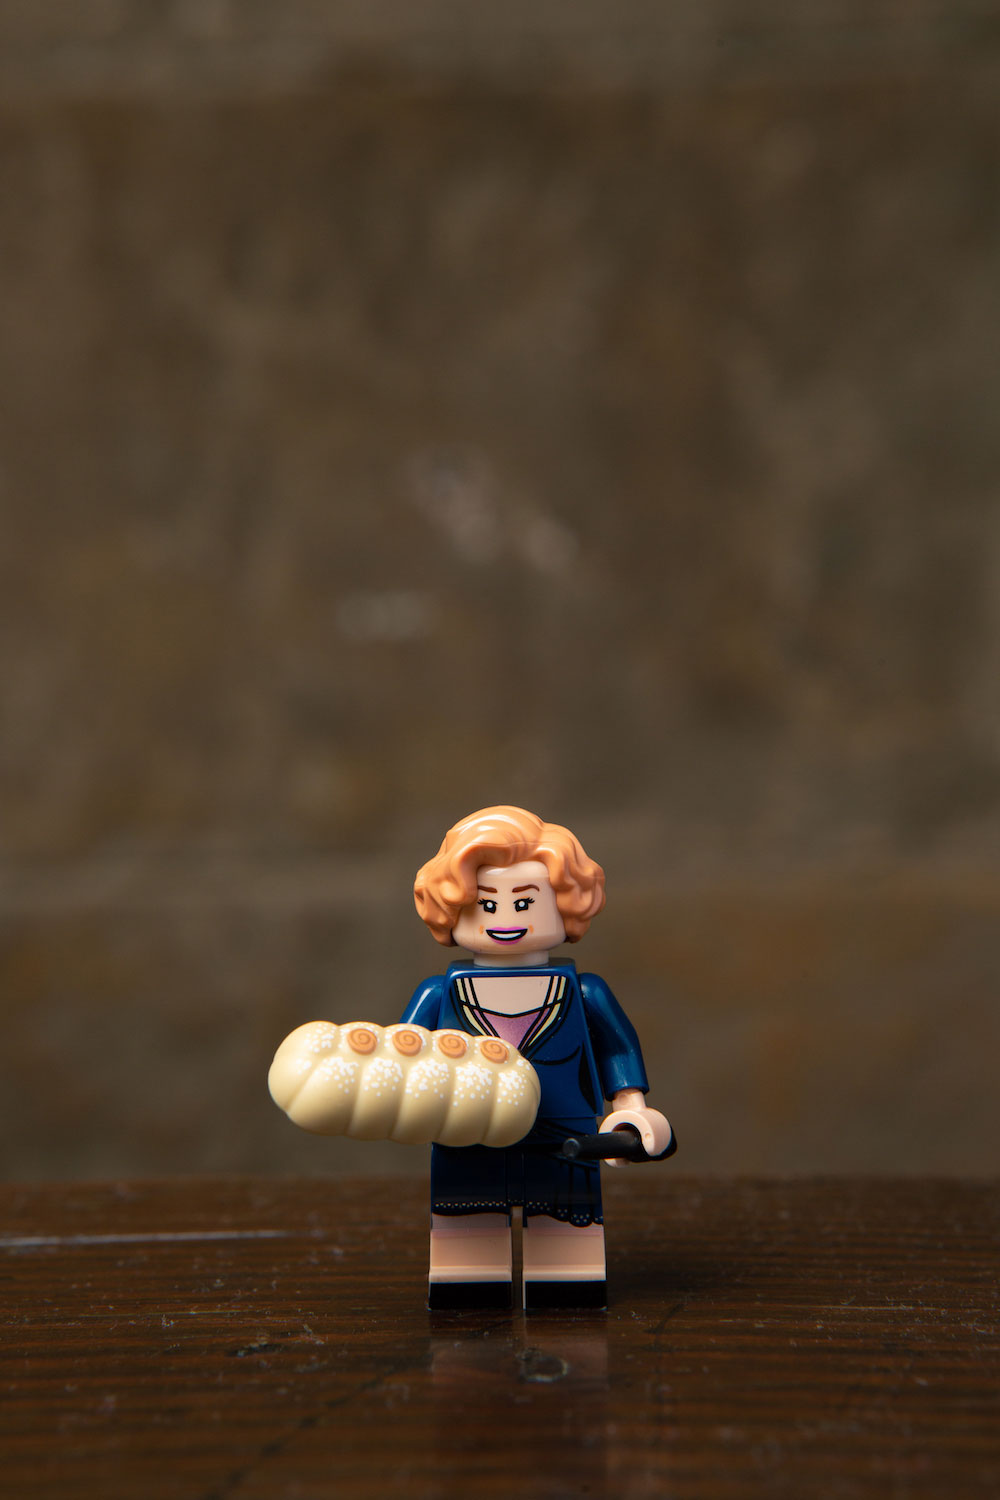 Queenie's LEGO minifigure includes a LEGO strudel… we wish we could eat it. (LEGO minifigures and all their parts not advised for children under 5.)